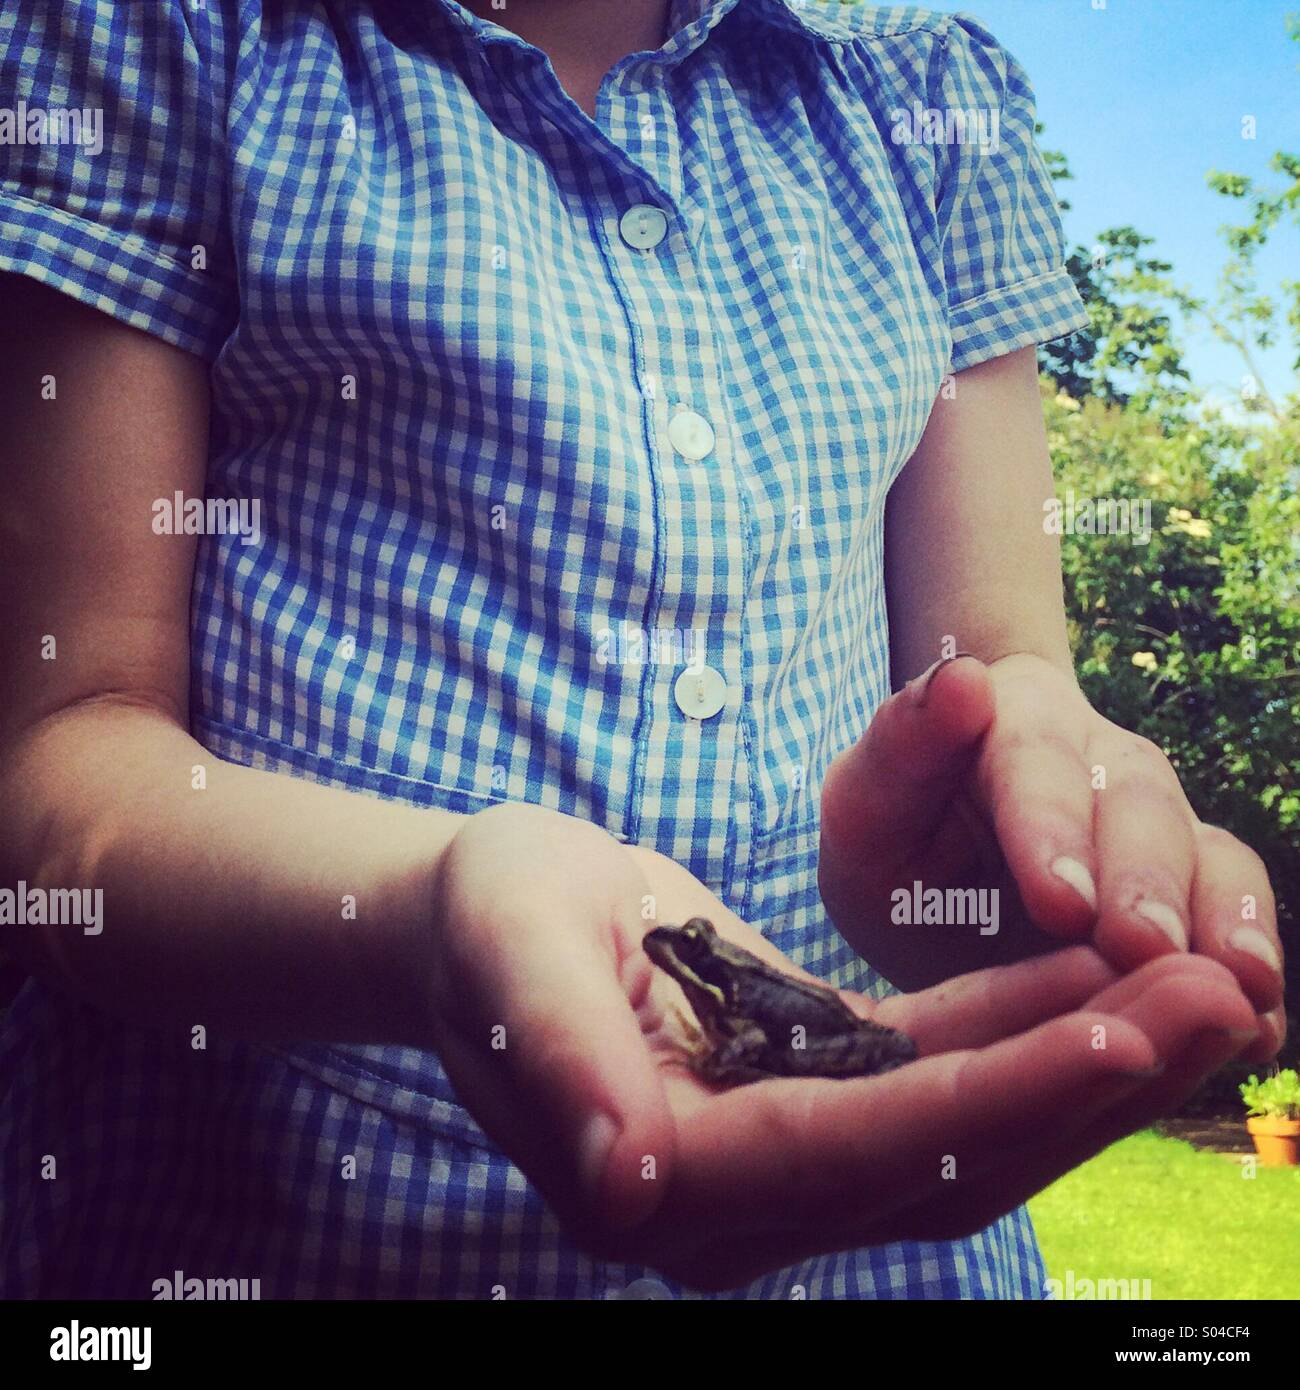 6 year old girl holding a baby frog. - Stock Image